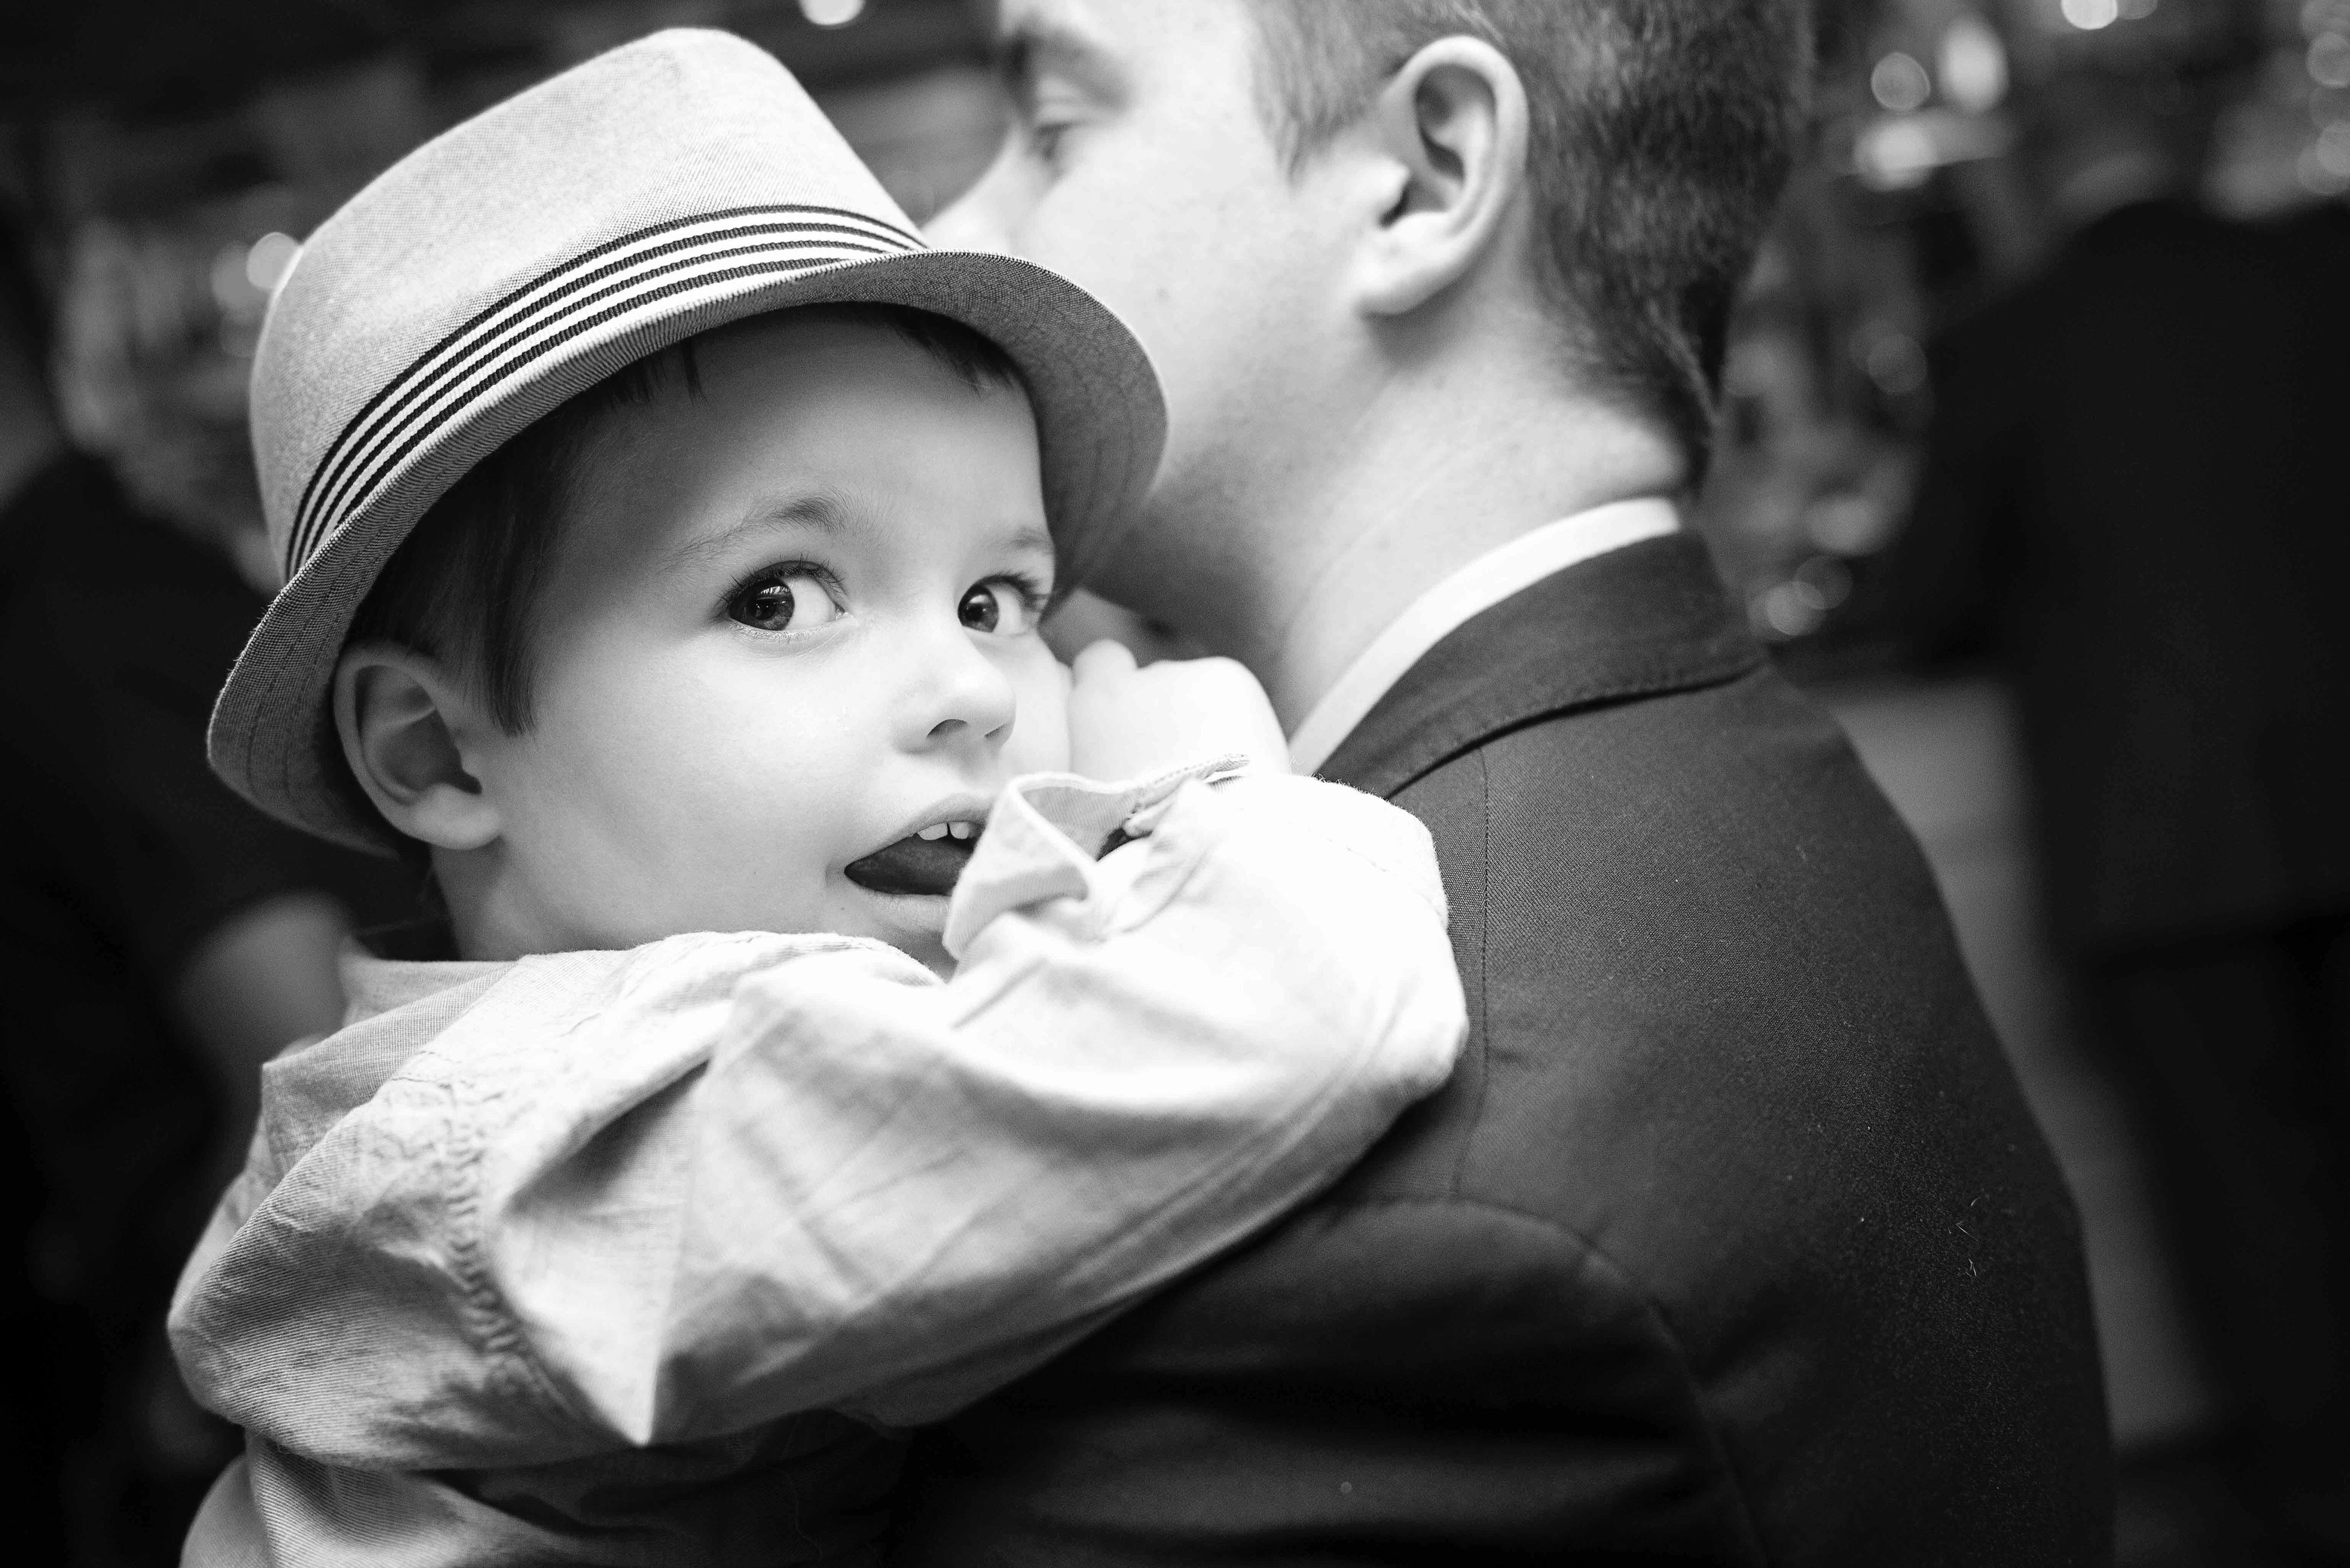 childhood, innocence, person, elementary age, cute, boys, baby, lifestyles, babyhood, toddler, headshot, girls, family, bonding, love, leisure activity, togetherness, focus on foreground